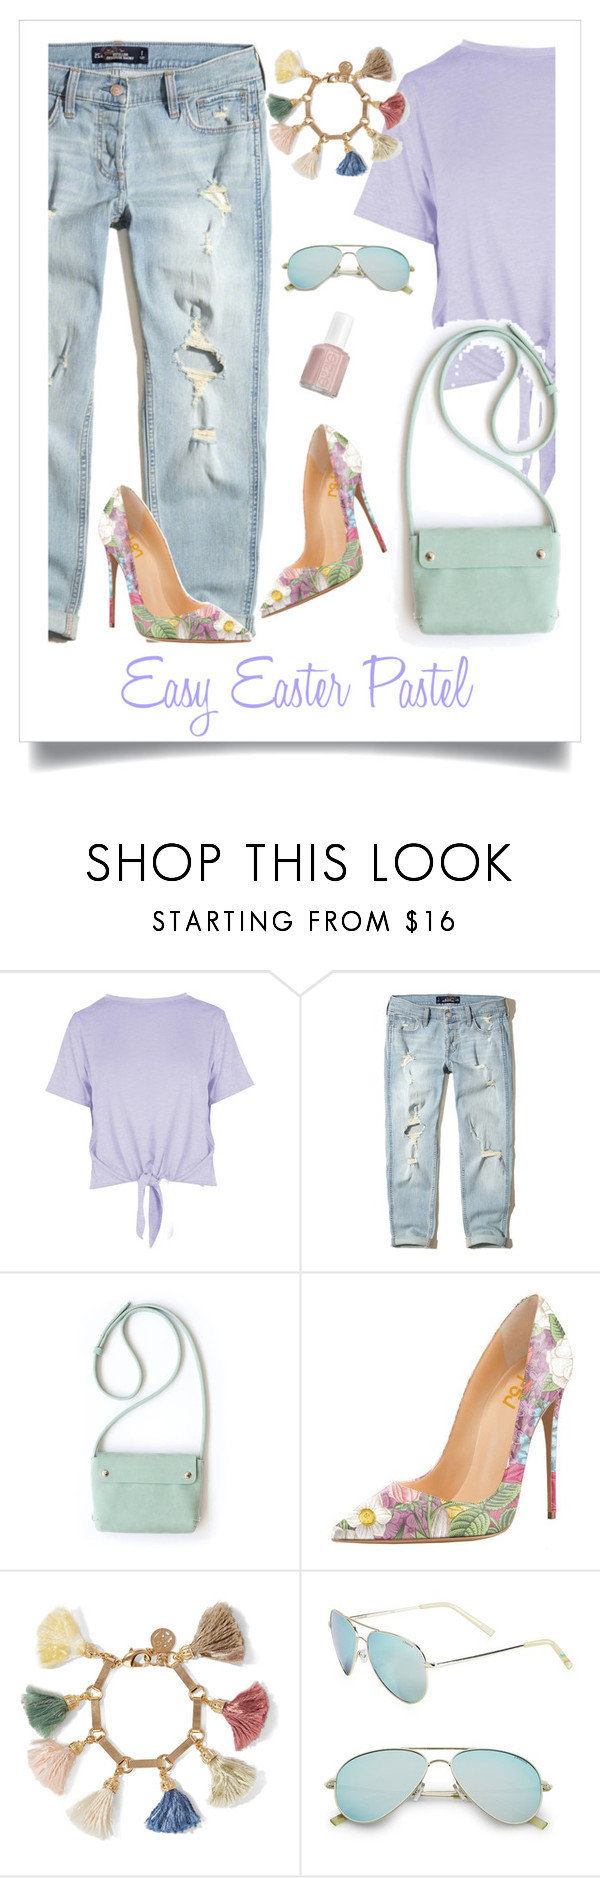 """""""Pastels"""" by style-stories ❤ liked on Polyvore featuring Boohoo, Hollister Co., Ben-Amun, Polaroid and Essie"""